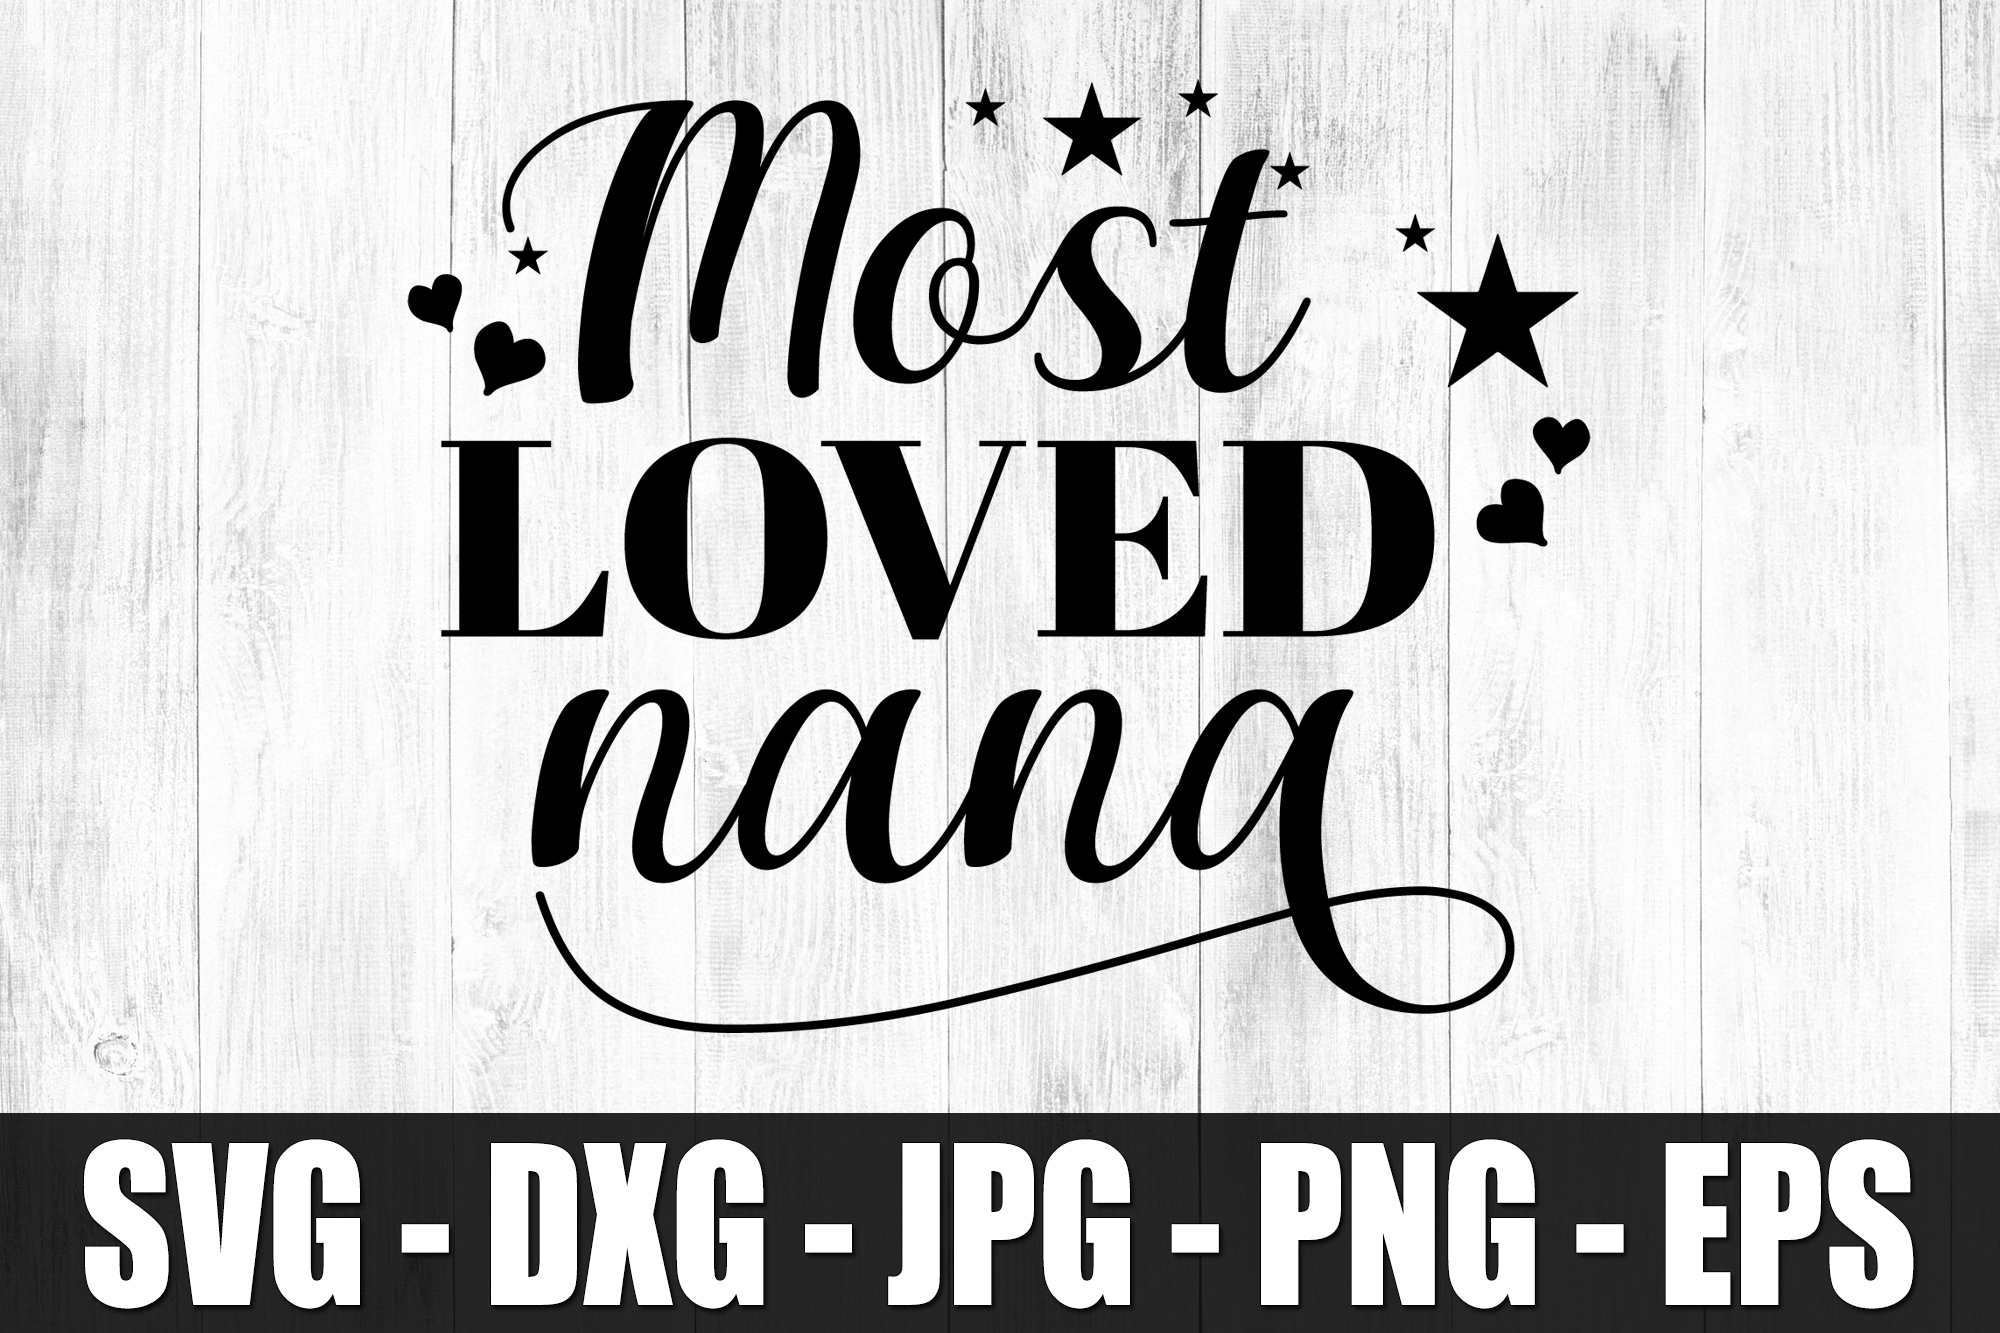 Most Loved Nana SVG DXF EPS Cute Most Loved Grandma Shirt example image 2